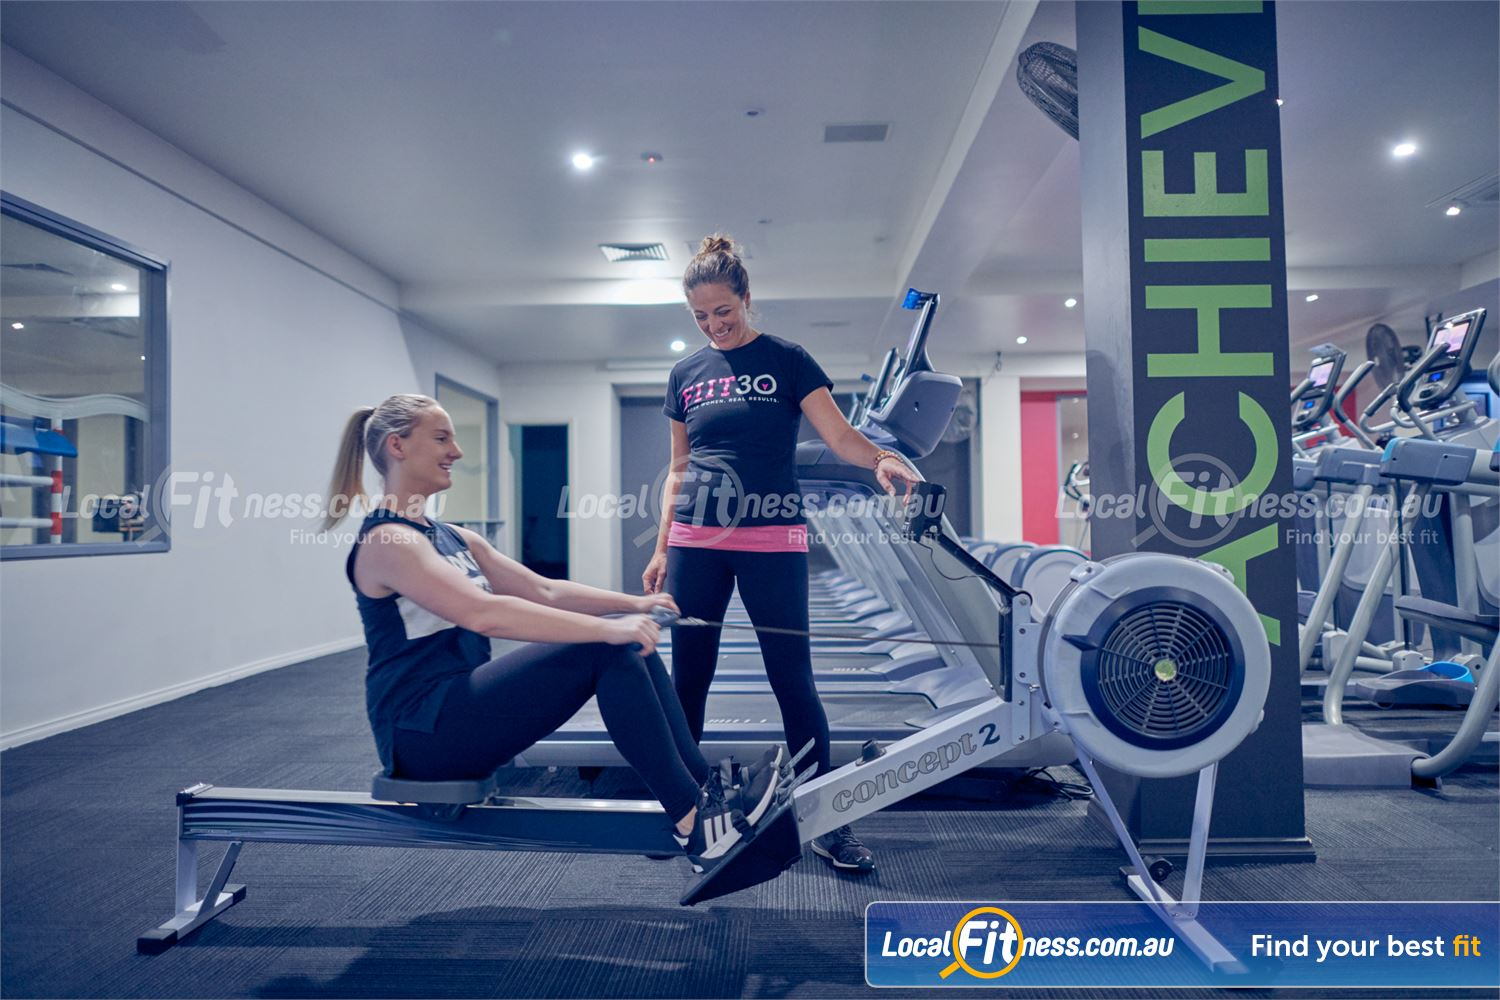 Fernwood Fitness Near Doncaster Get a HIIT cardio workout with indoor rowing.